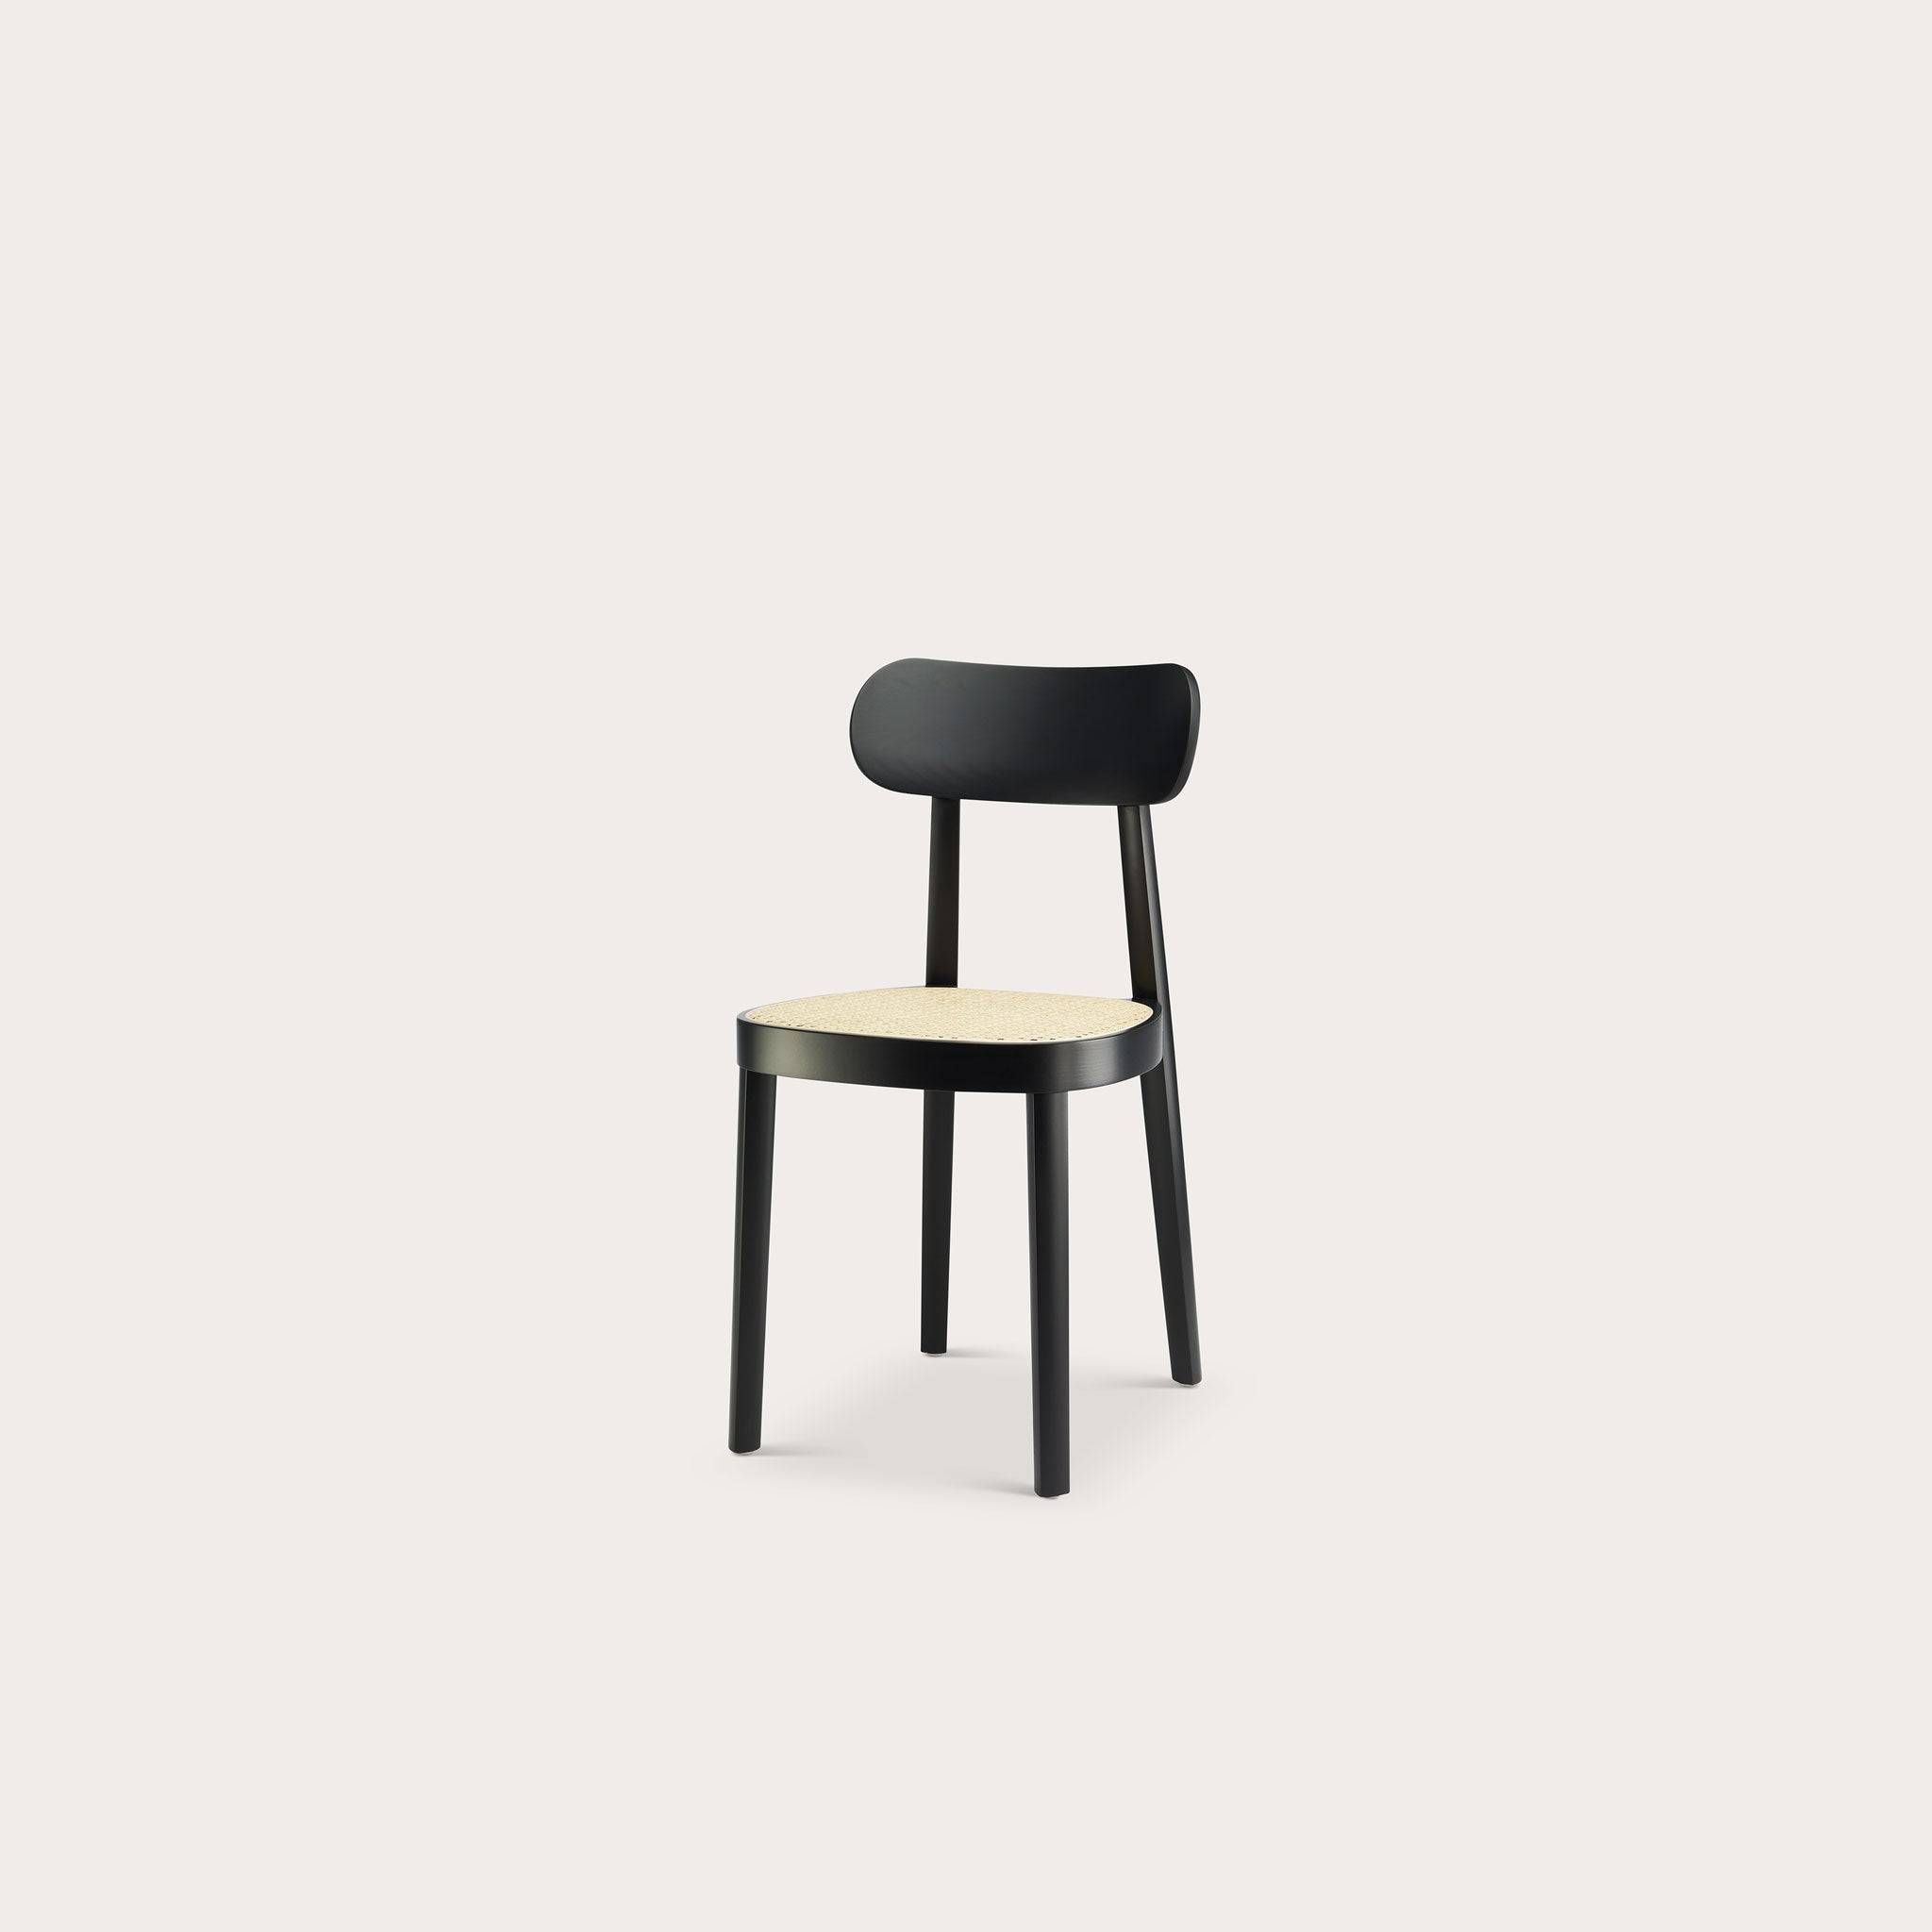 118 Wooden Chair Seating Sebastian Herkner Designer Furniture Sku: 015-120-10000